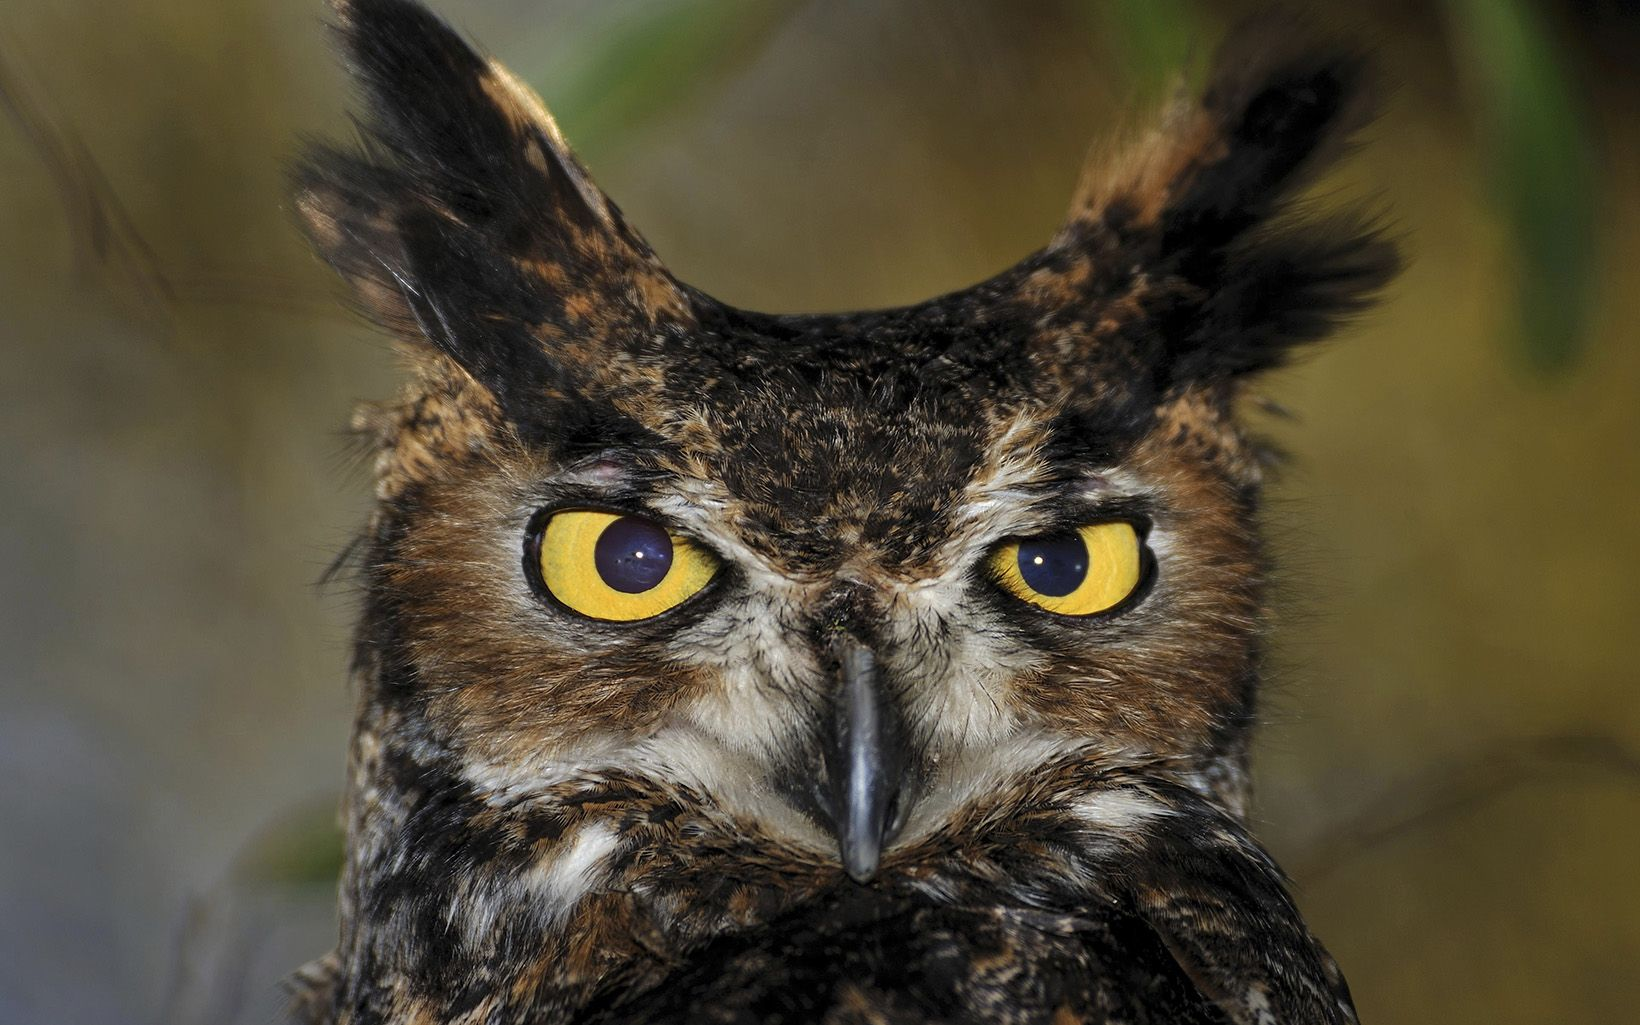 A head shot of a brown owl shows off its yellow eyes.